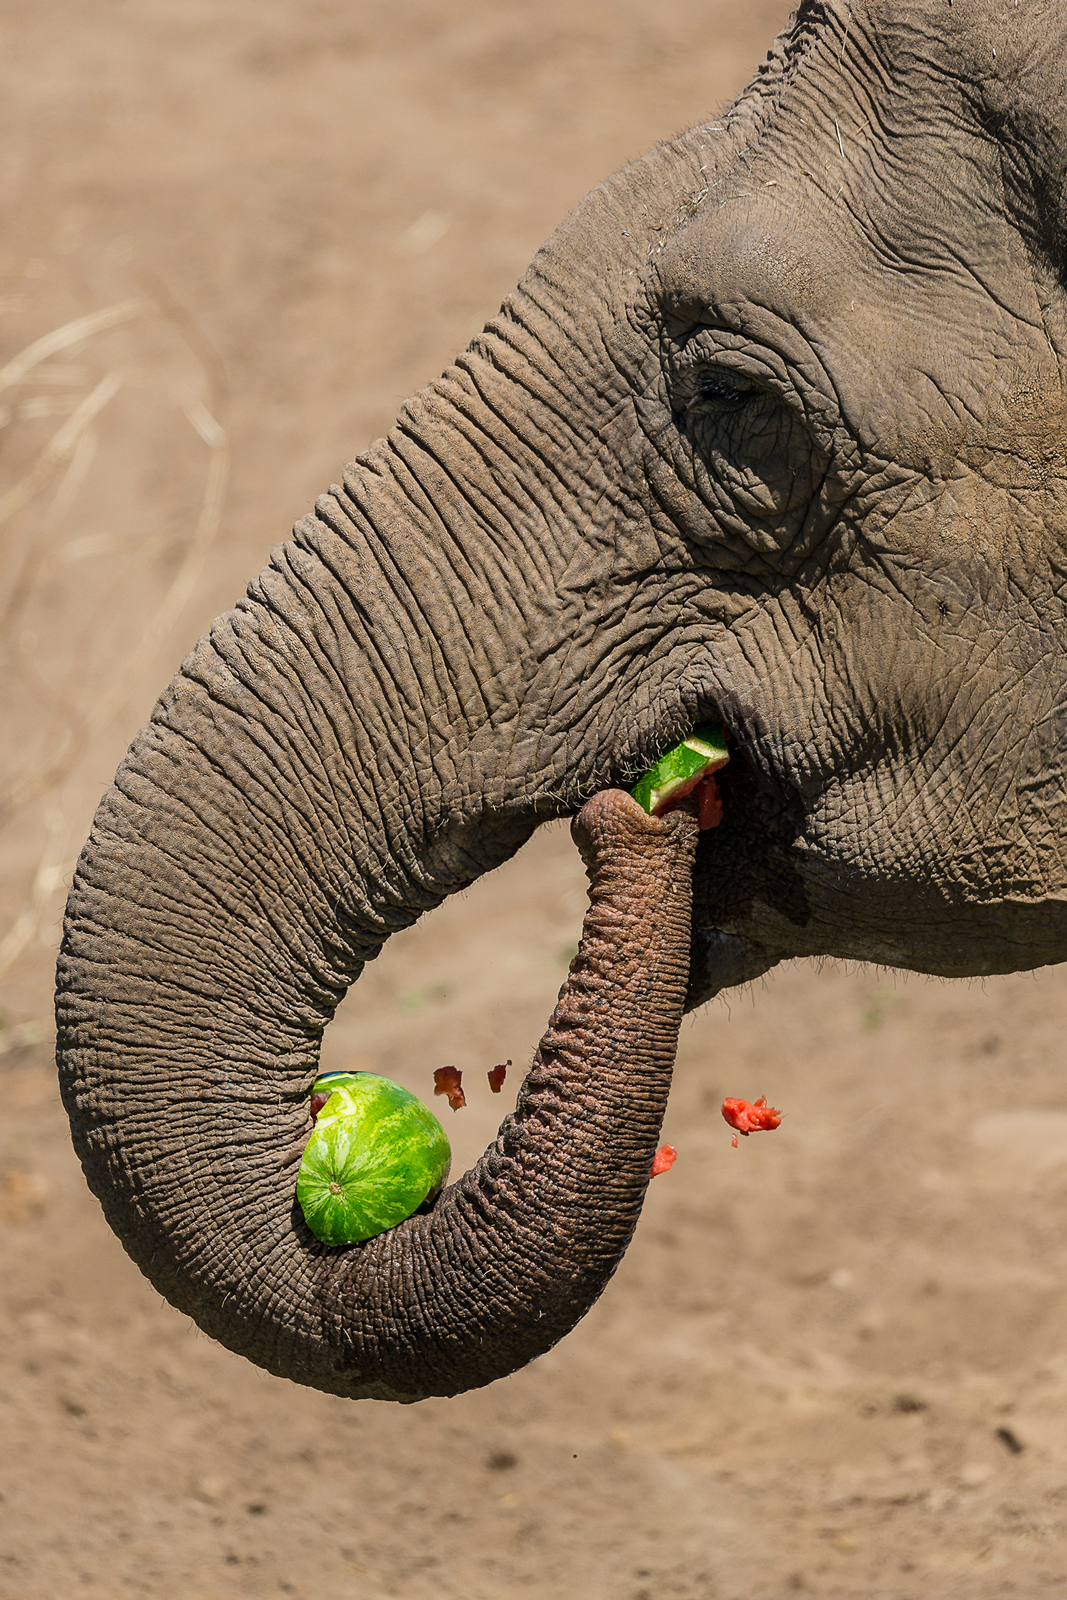 San Diego Zoo Celebrates 100th Birthday with a Party for Guests at Elephant Odyssey